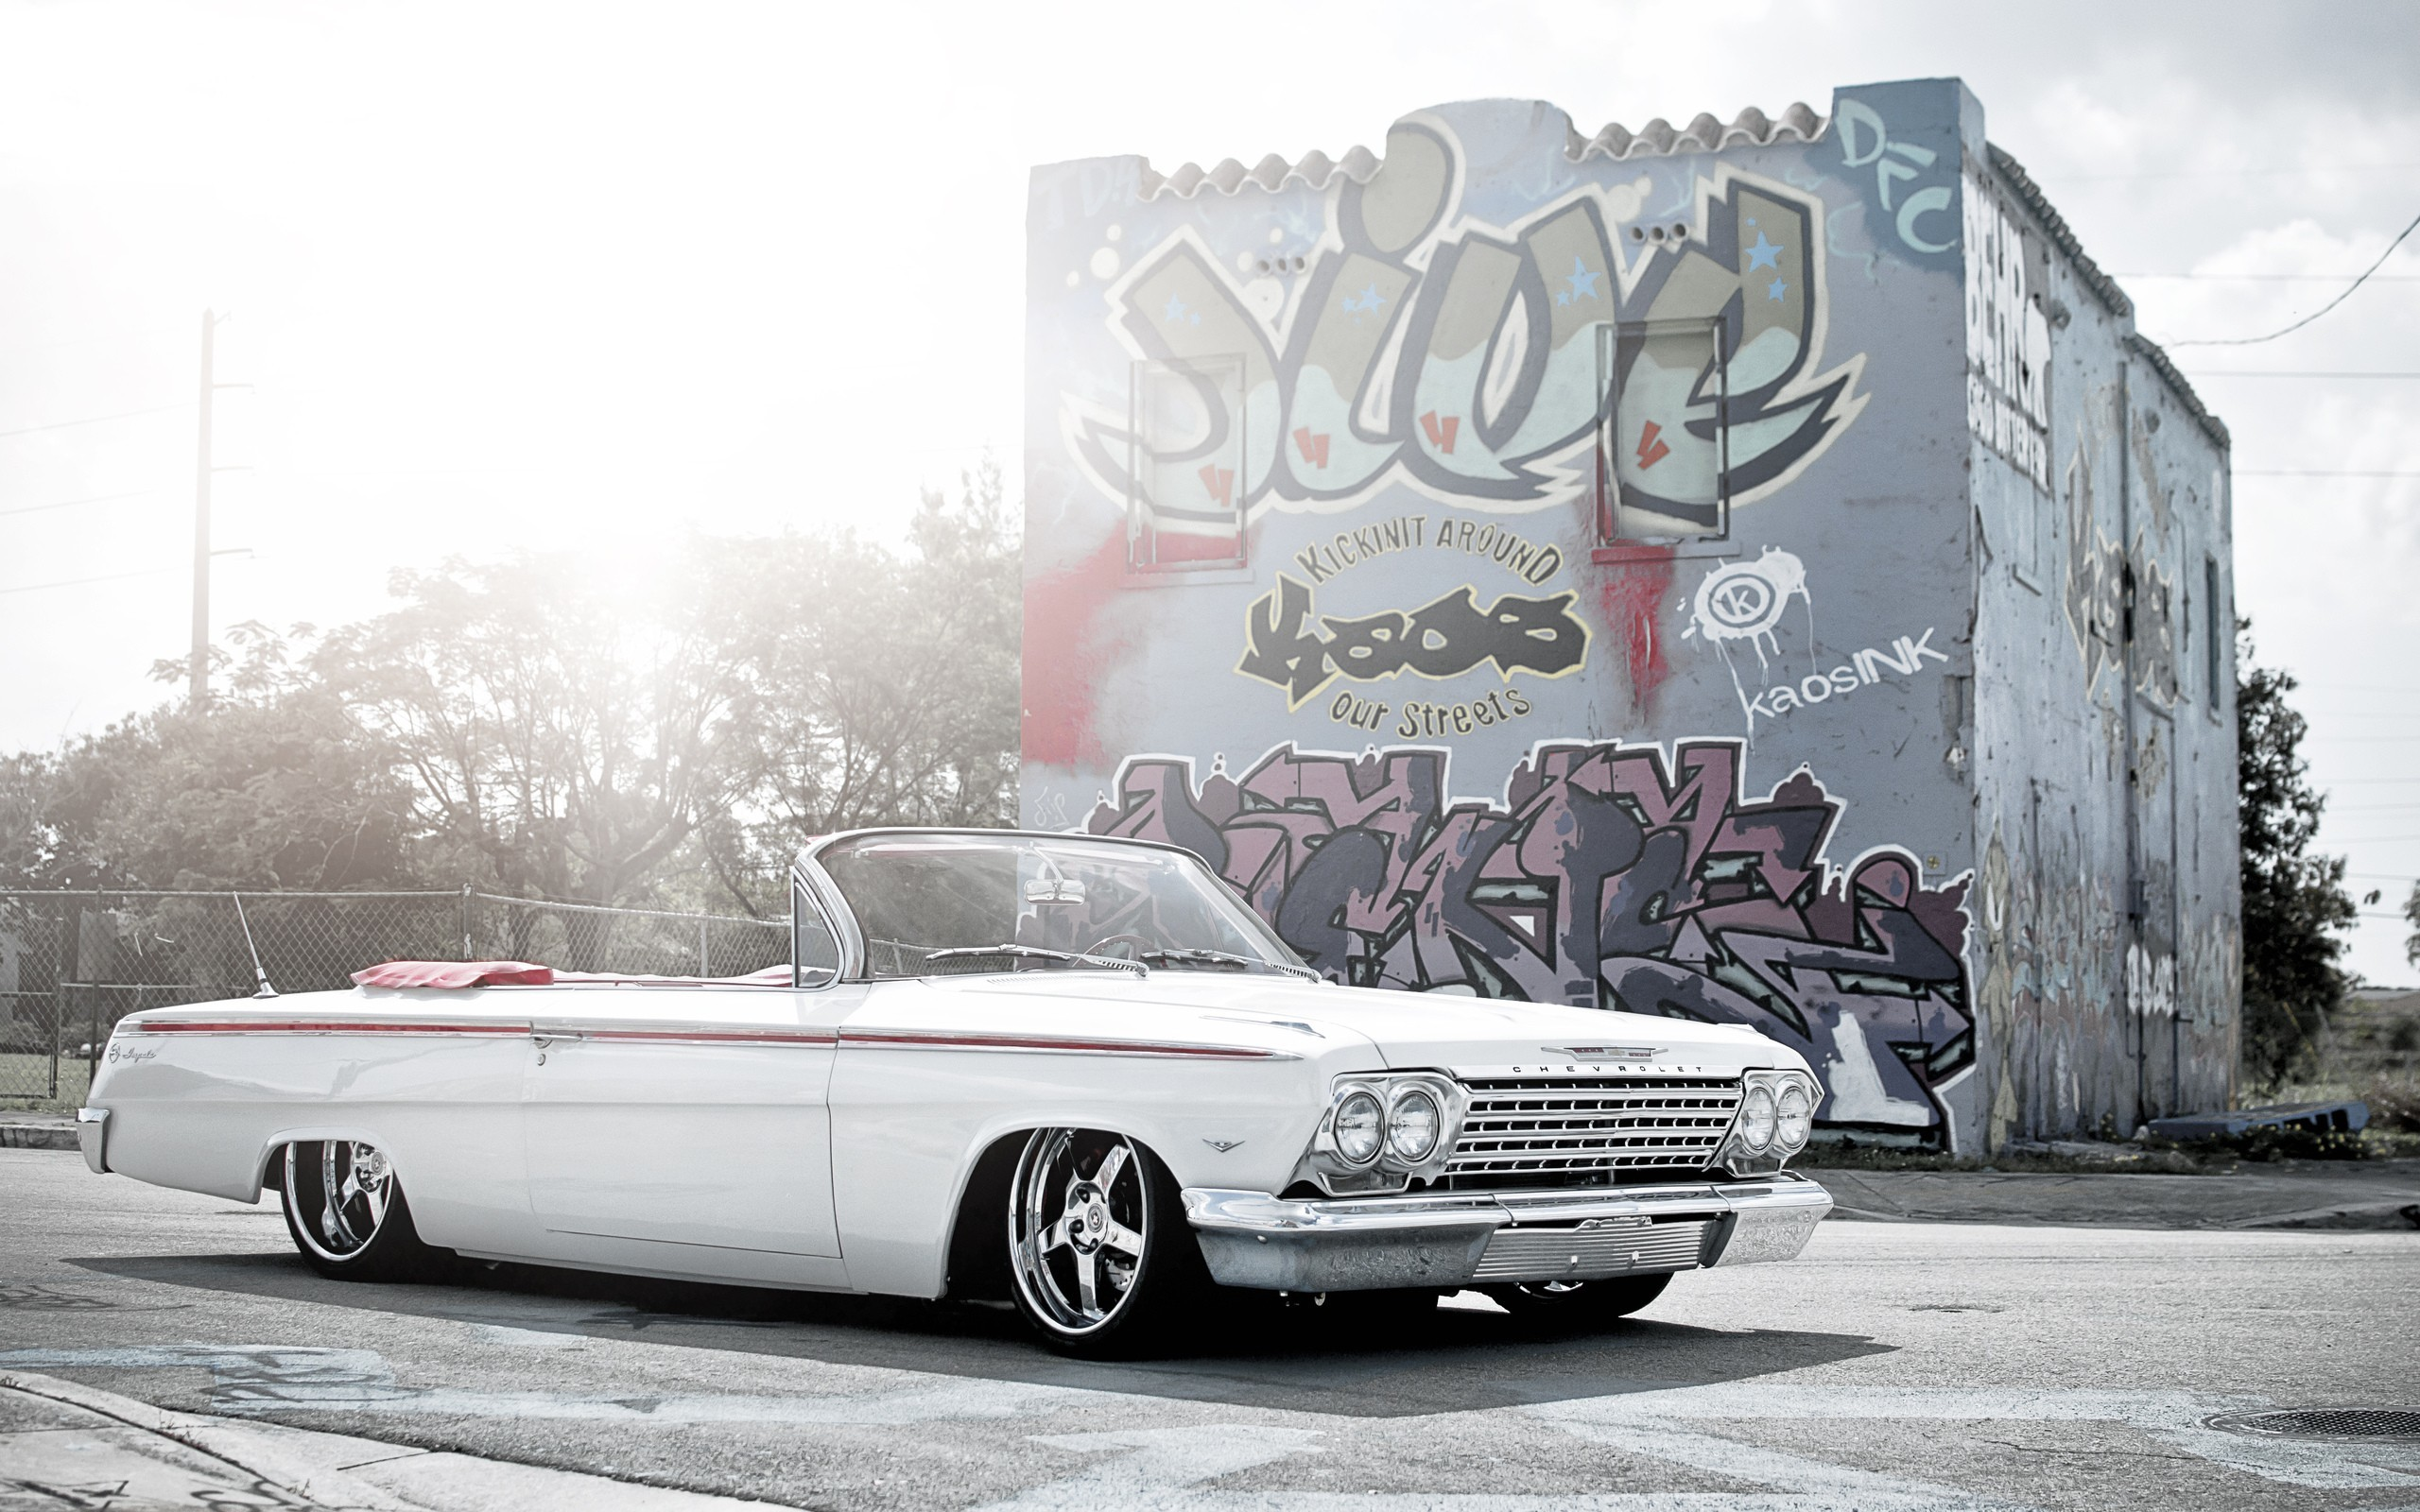 2560x1600 Vehicles - Lowrider Chevrolet Wallpaper